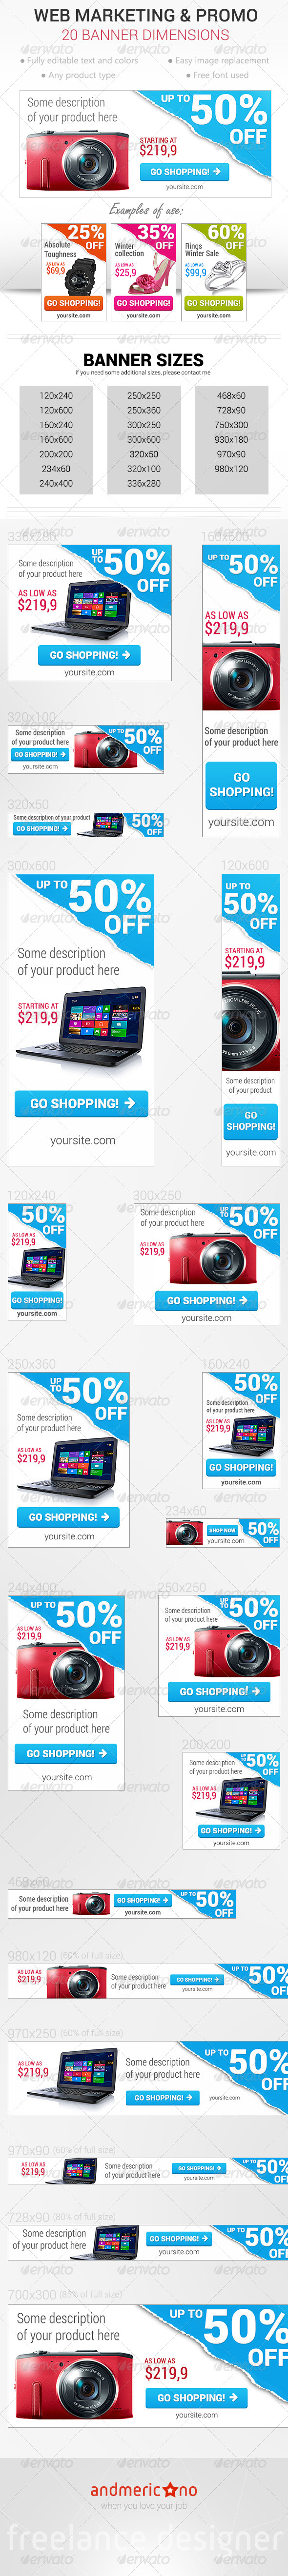 GraphicRiver Web Marketing Banners 6665300